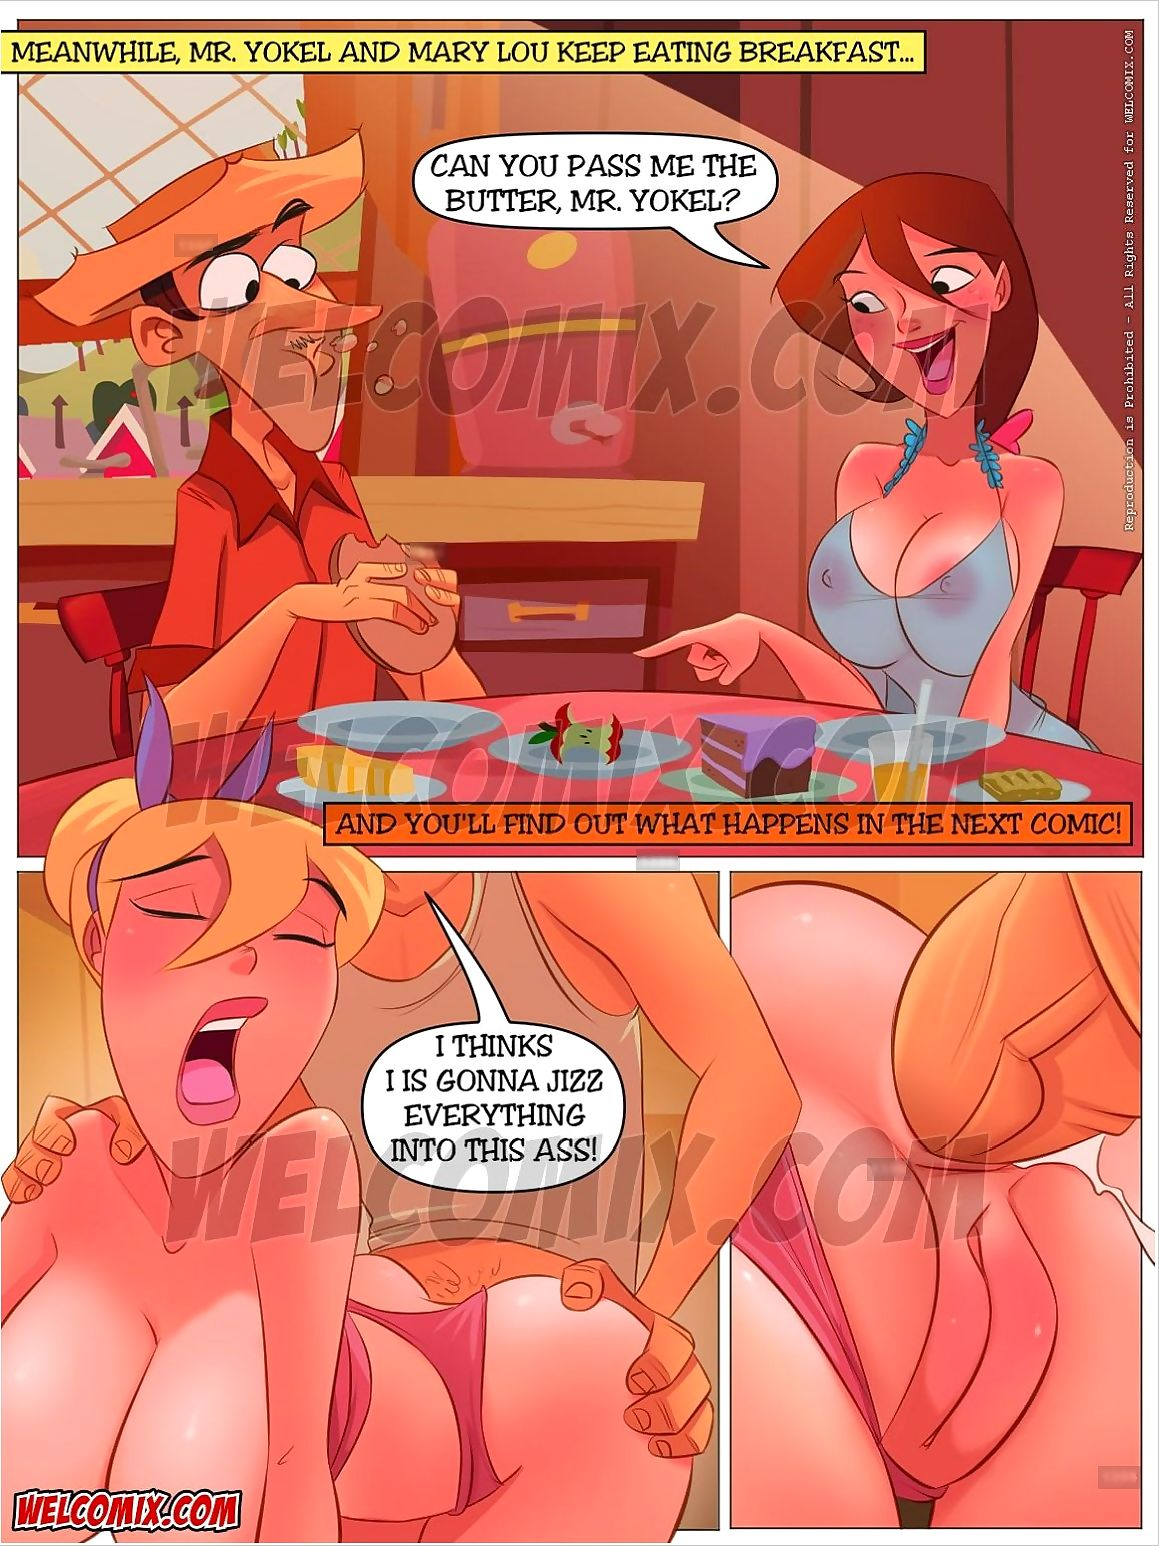 Hillbilly Farm 19- Waking Up With a Hard-On